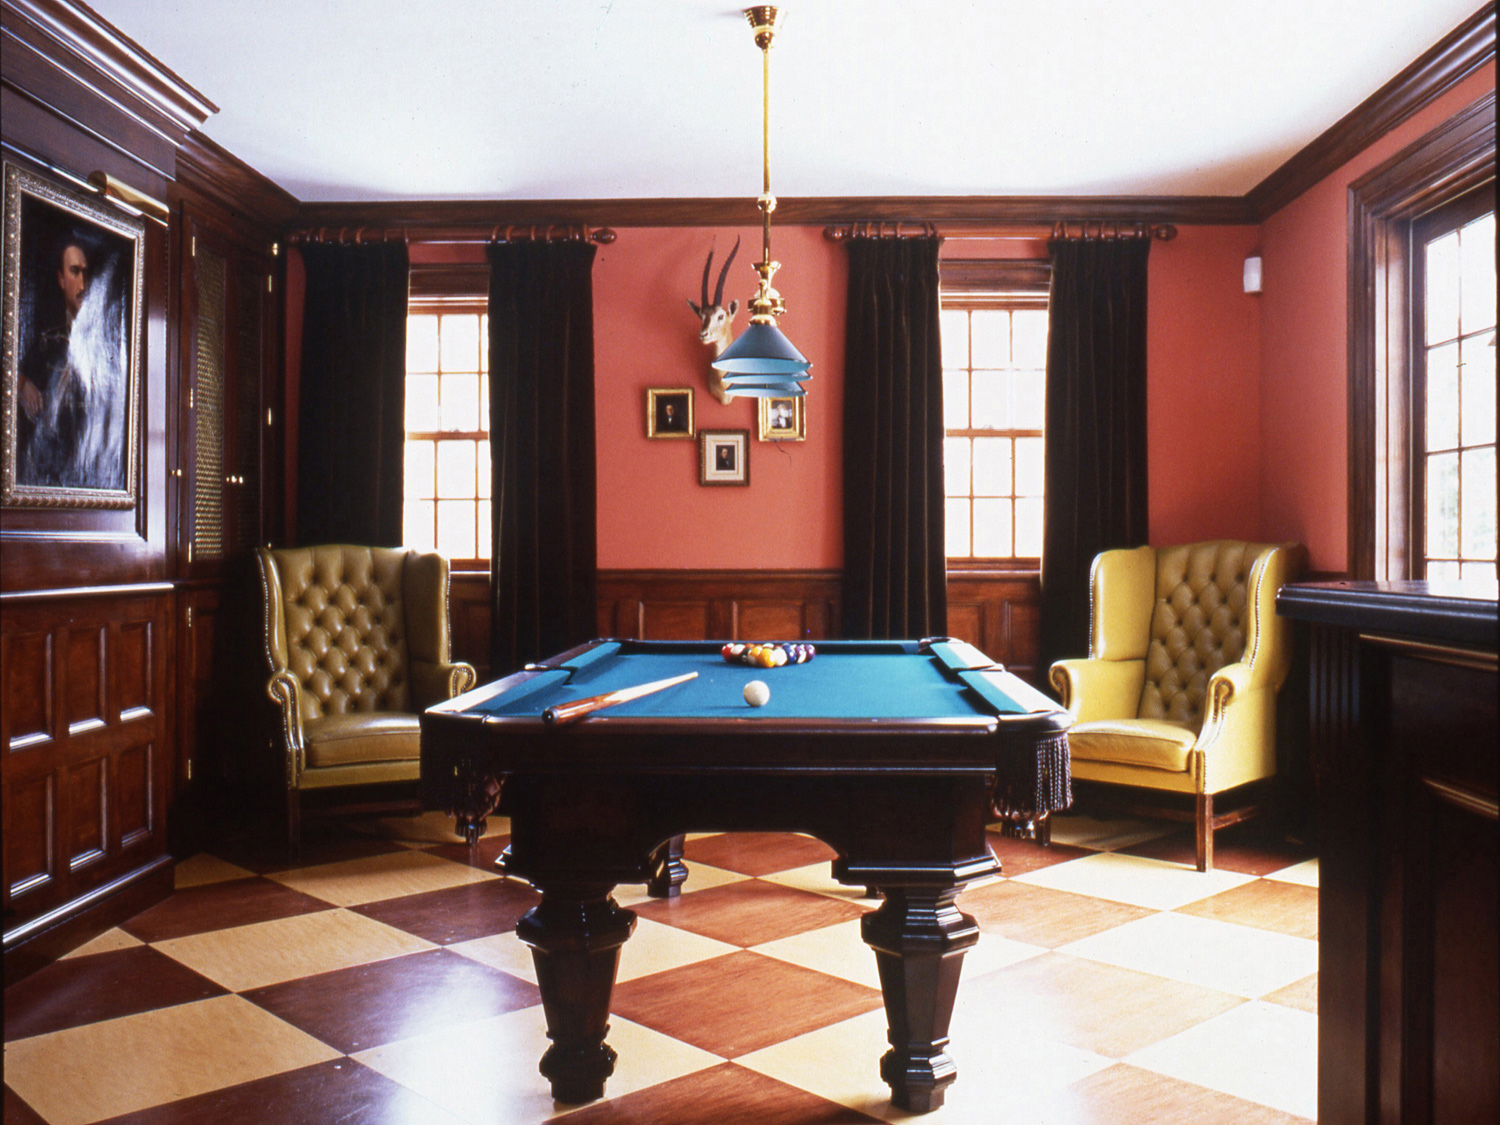 otremba-billiard-web.jpg